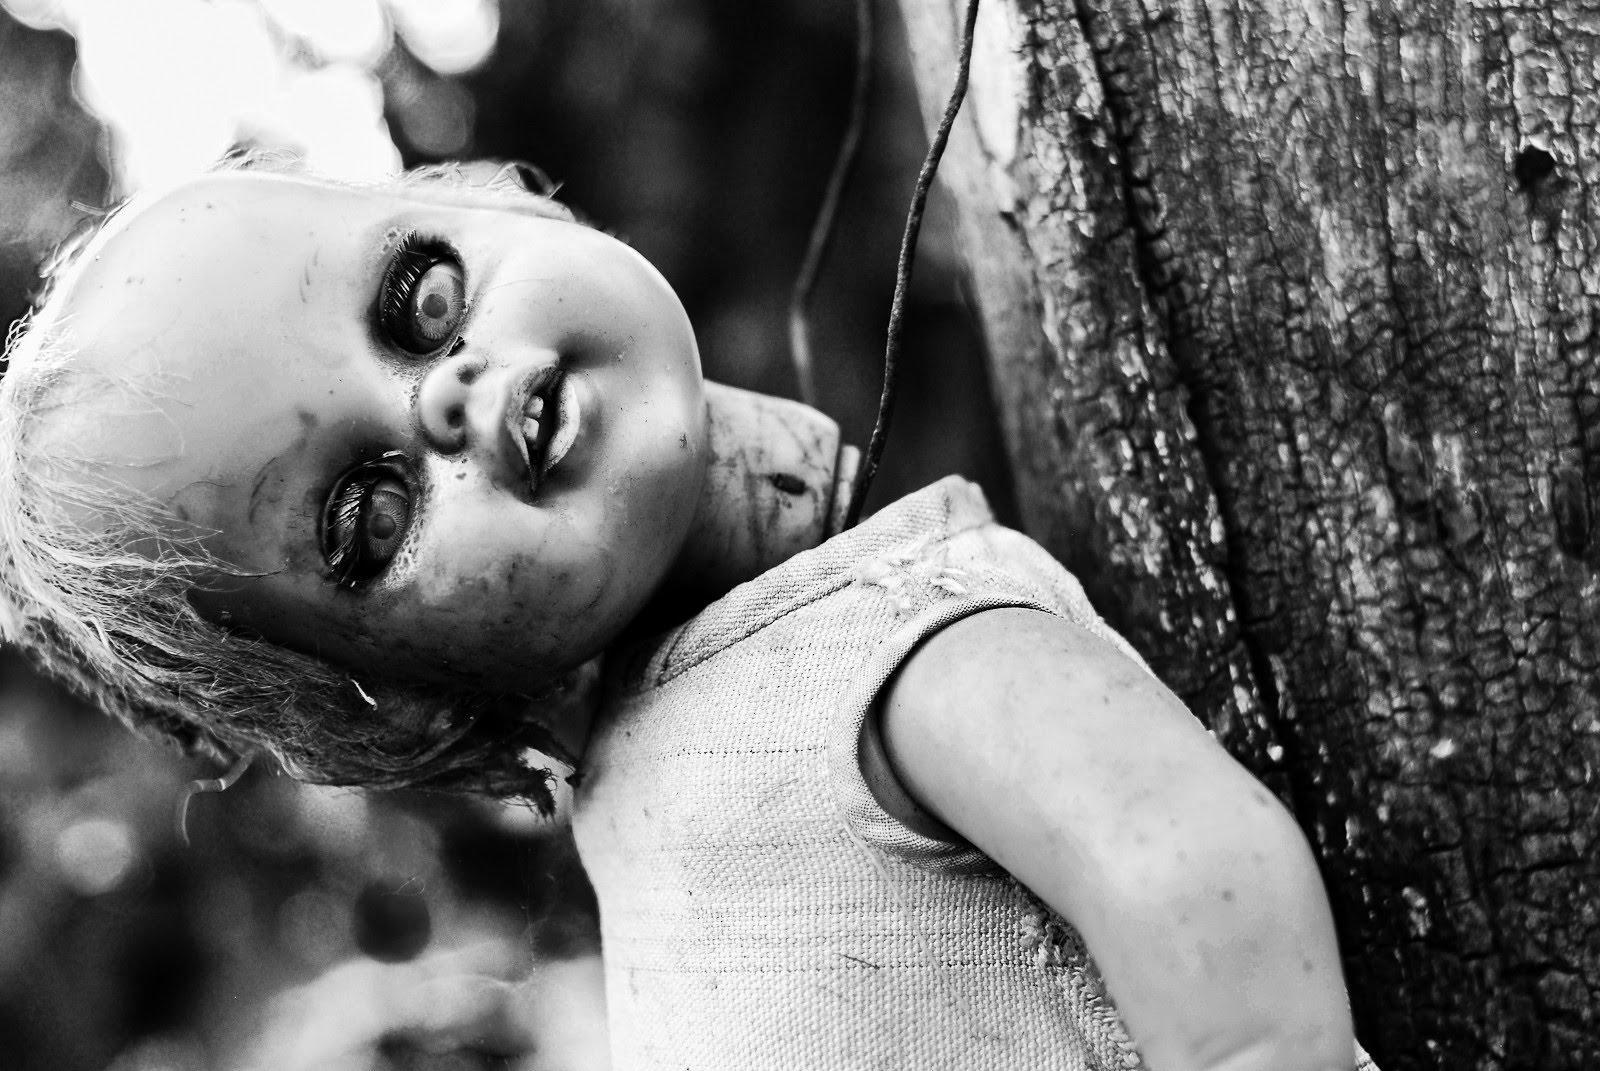 Mexico, Island of Hanging Dolls, Beautiful Islands, World, Creepy